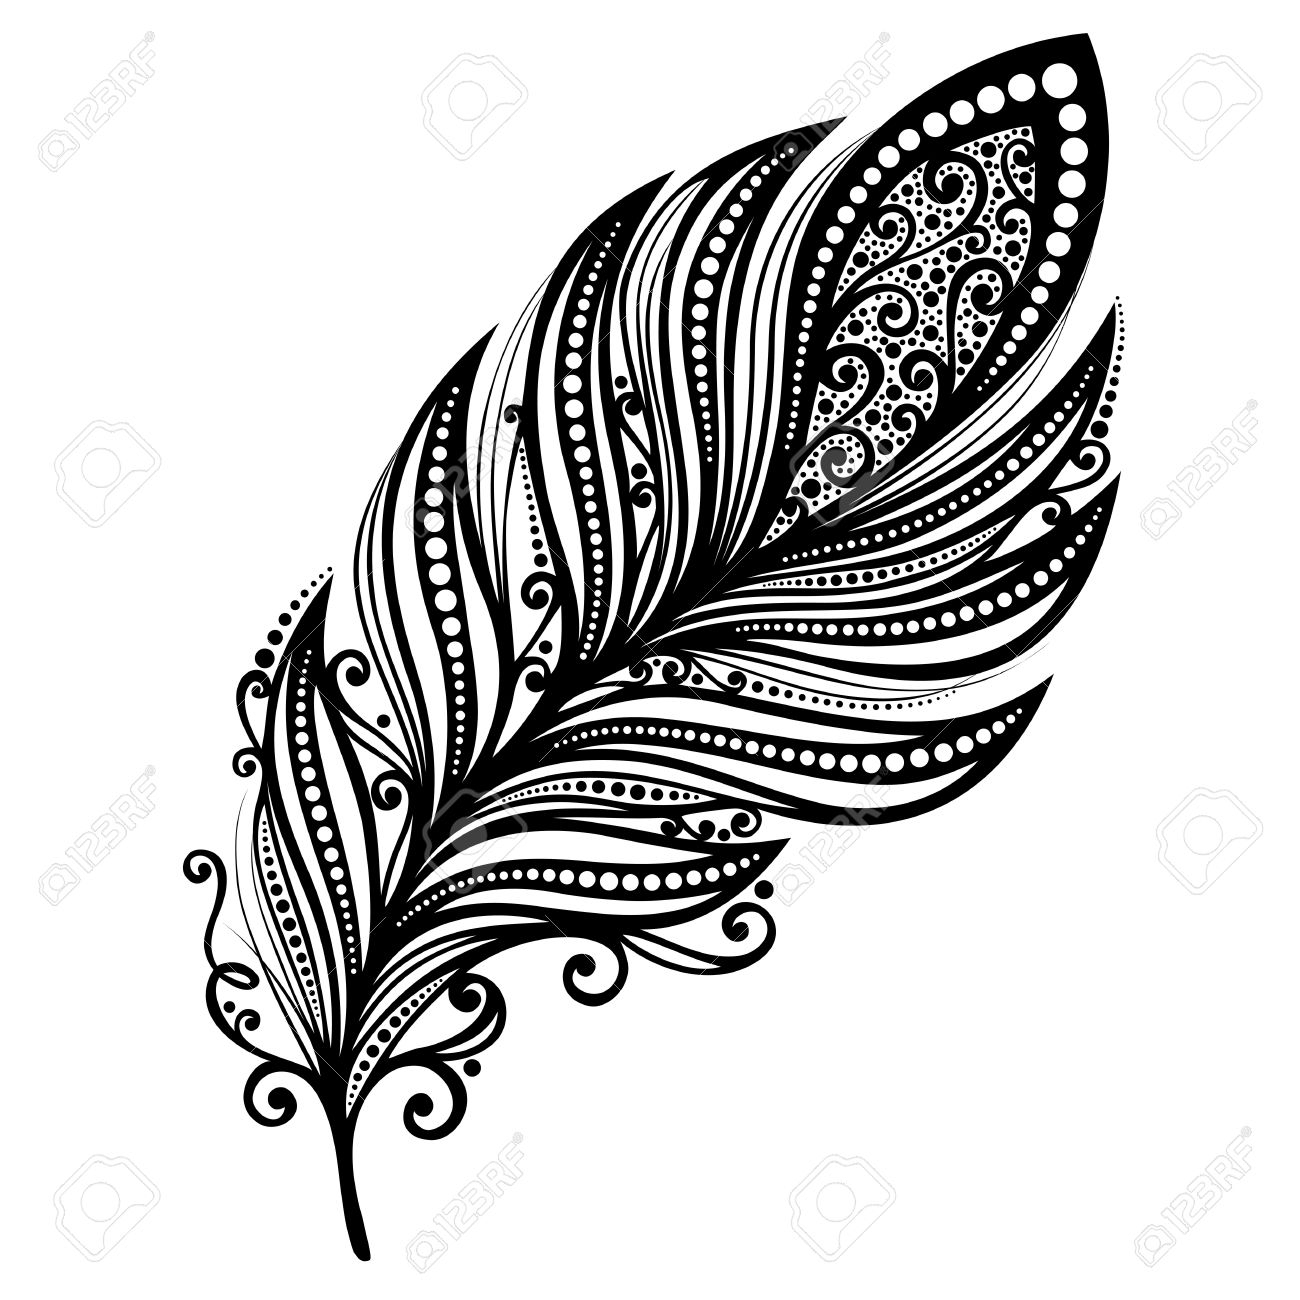 http://previews.123rf.com/images/irinarivoruchko/irinarivoruchko1403/irinarivoruchko140300246/26705730-Peerless-Decorative-Feather-Vector-Patterned-design-Tattoo-Stock-Vector.jpg